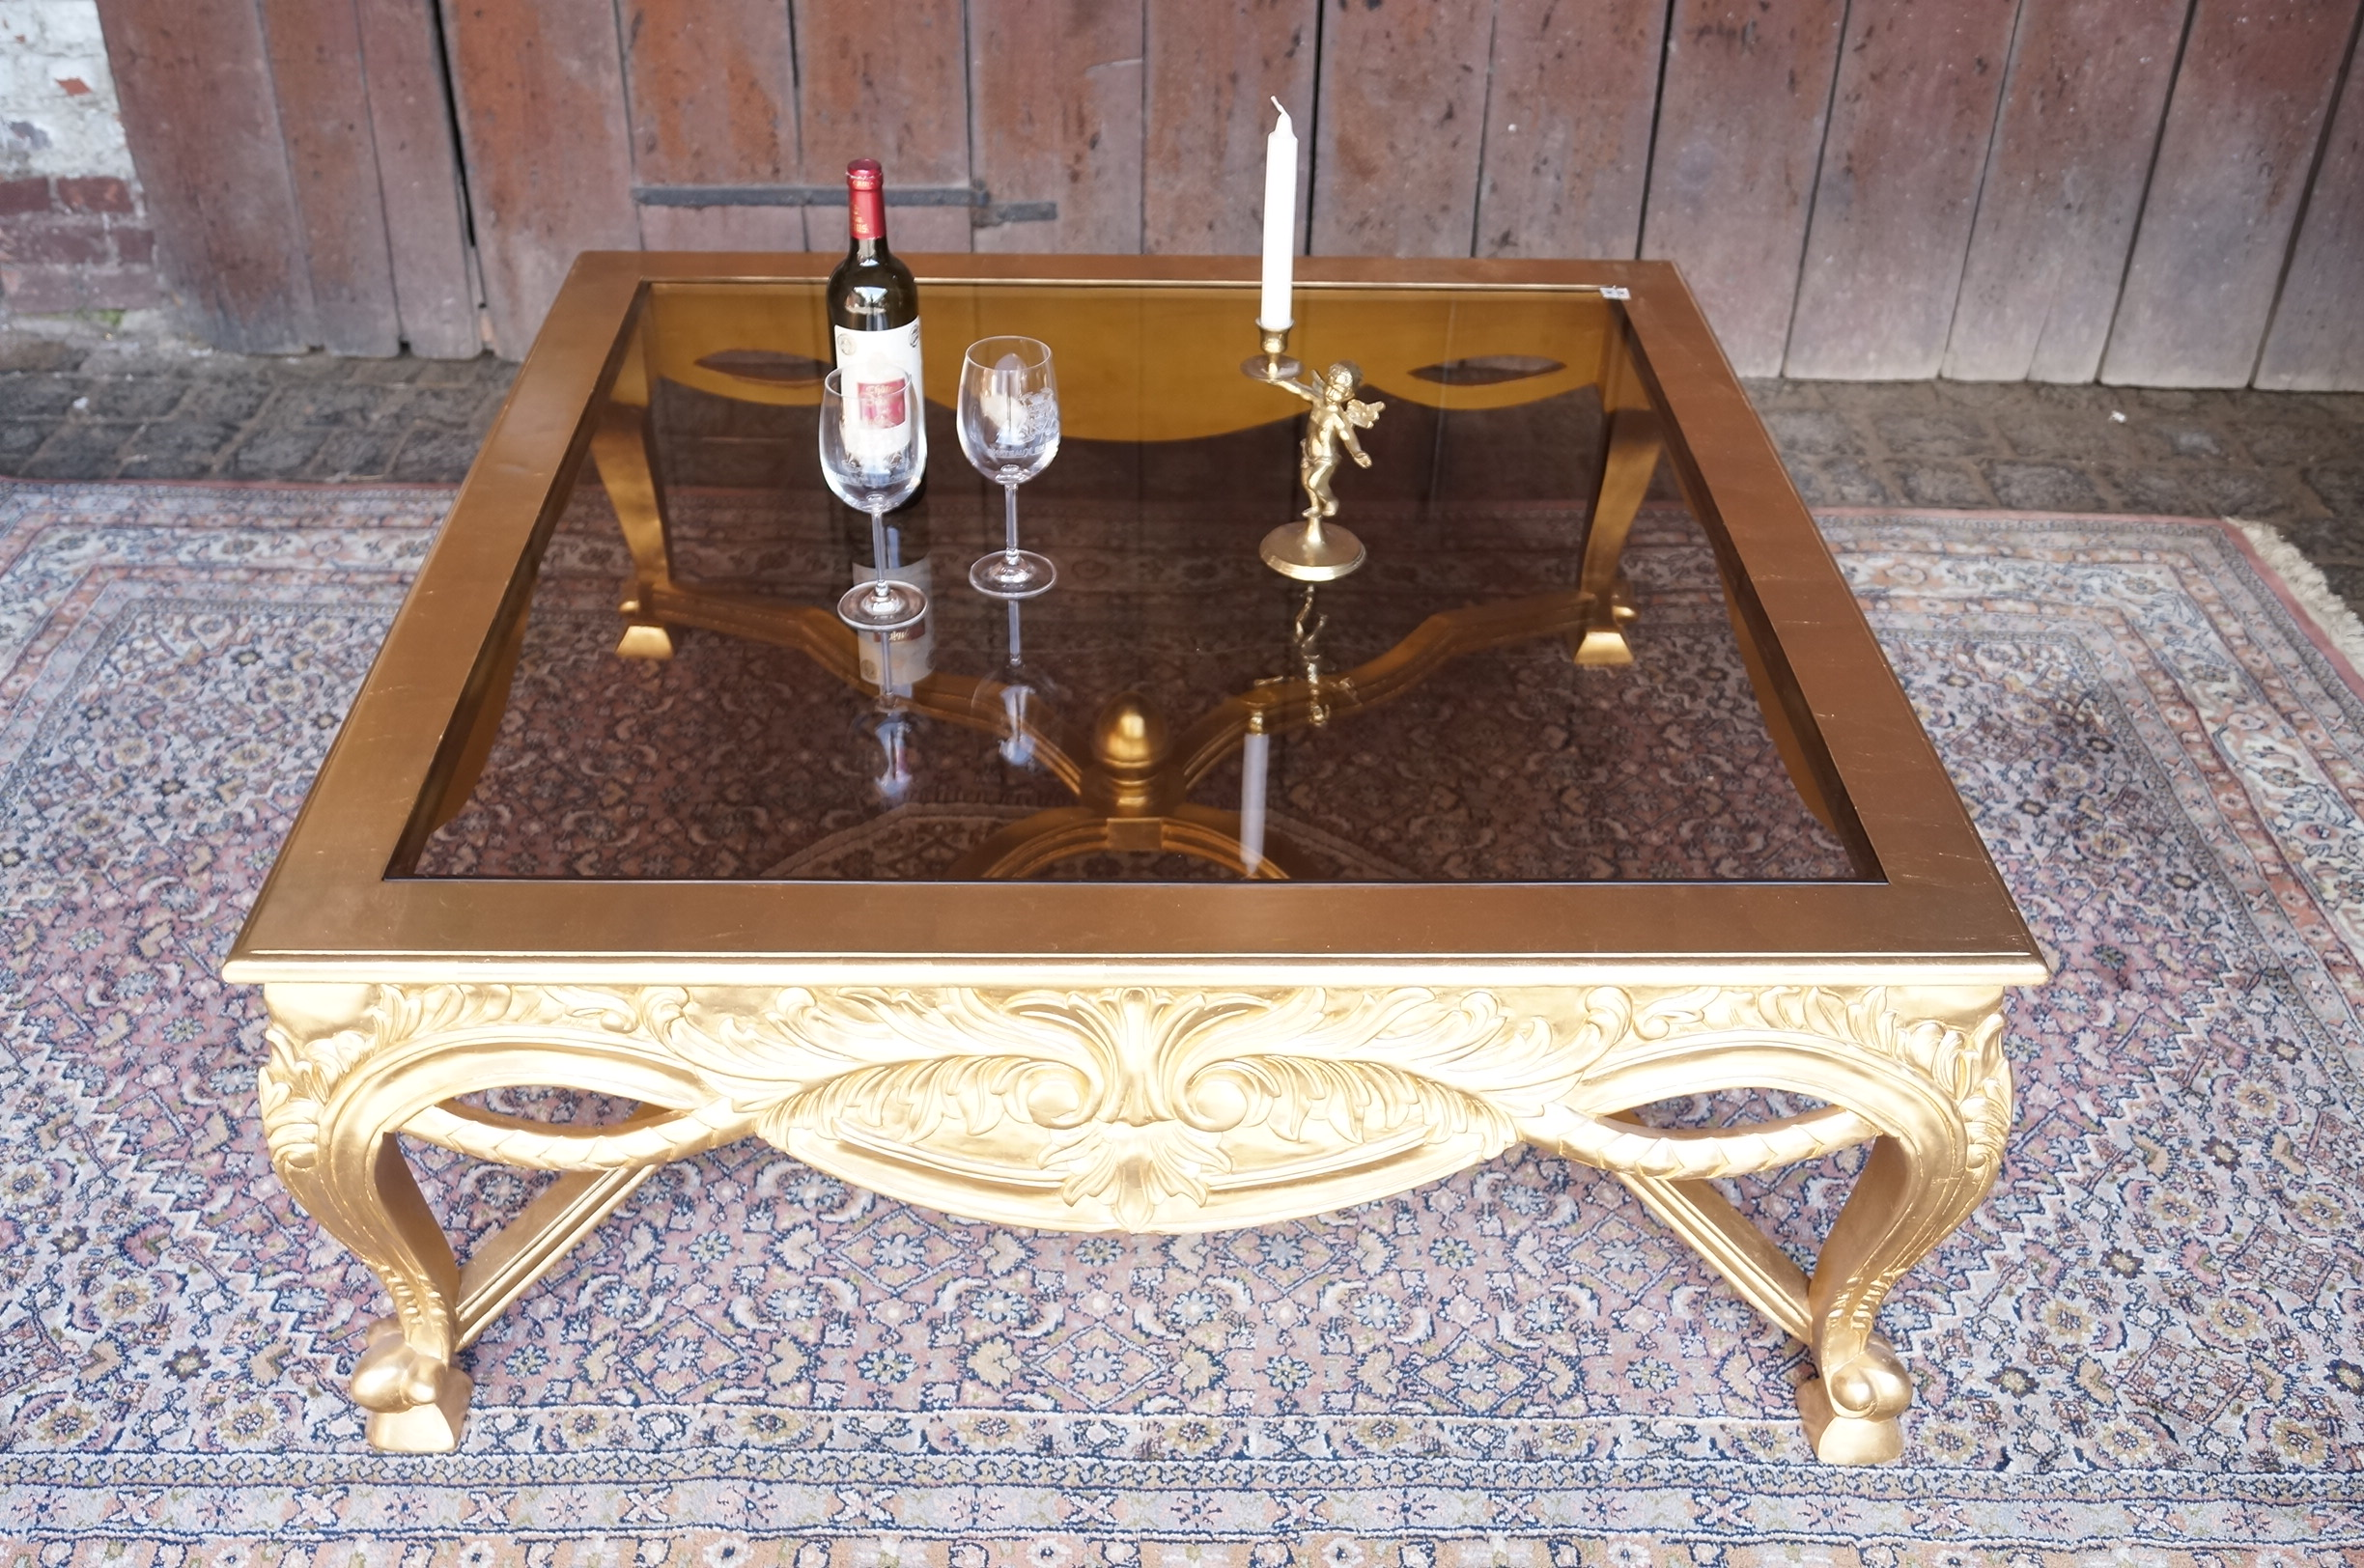 Tr s grande table basse salon 120x120cm en bois massif - Tres grande table basse ...